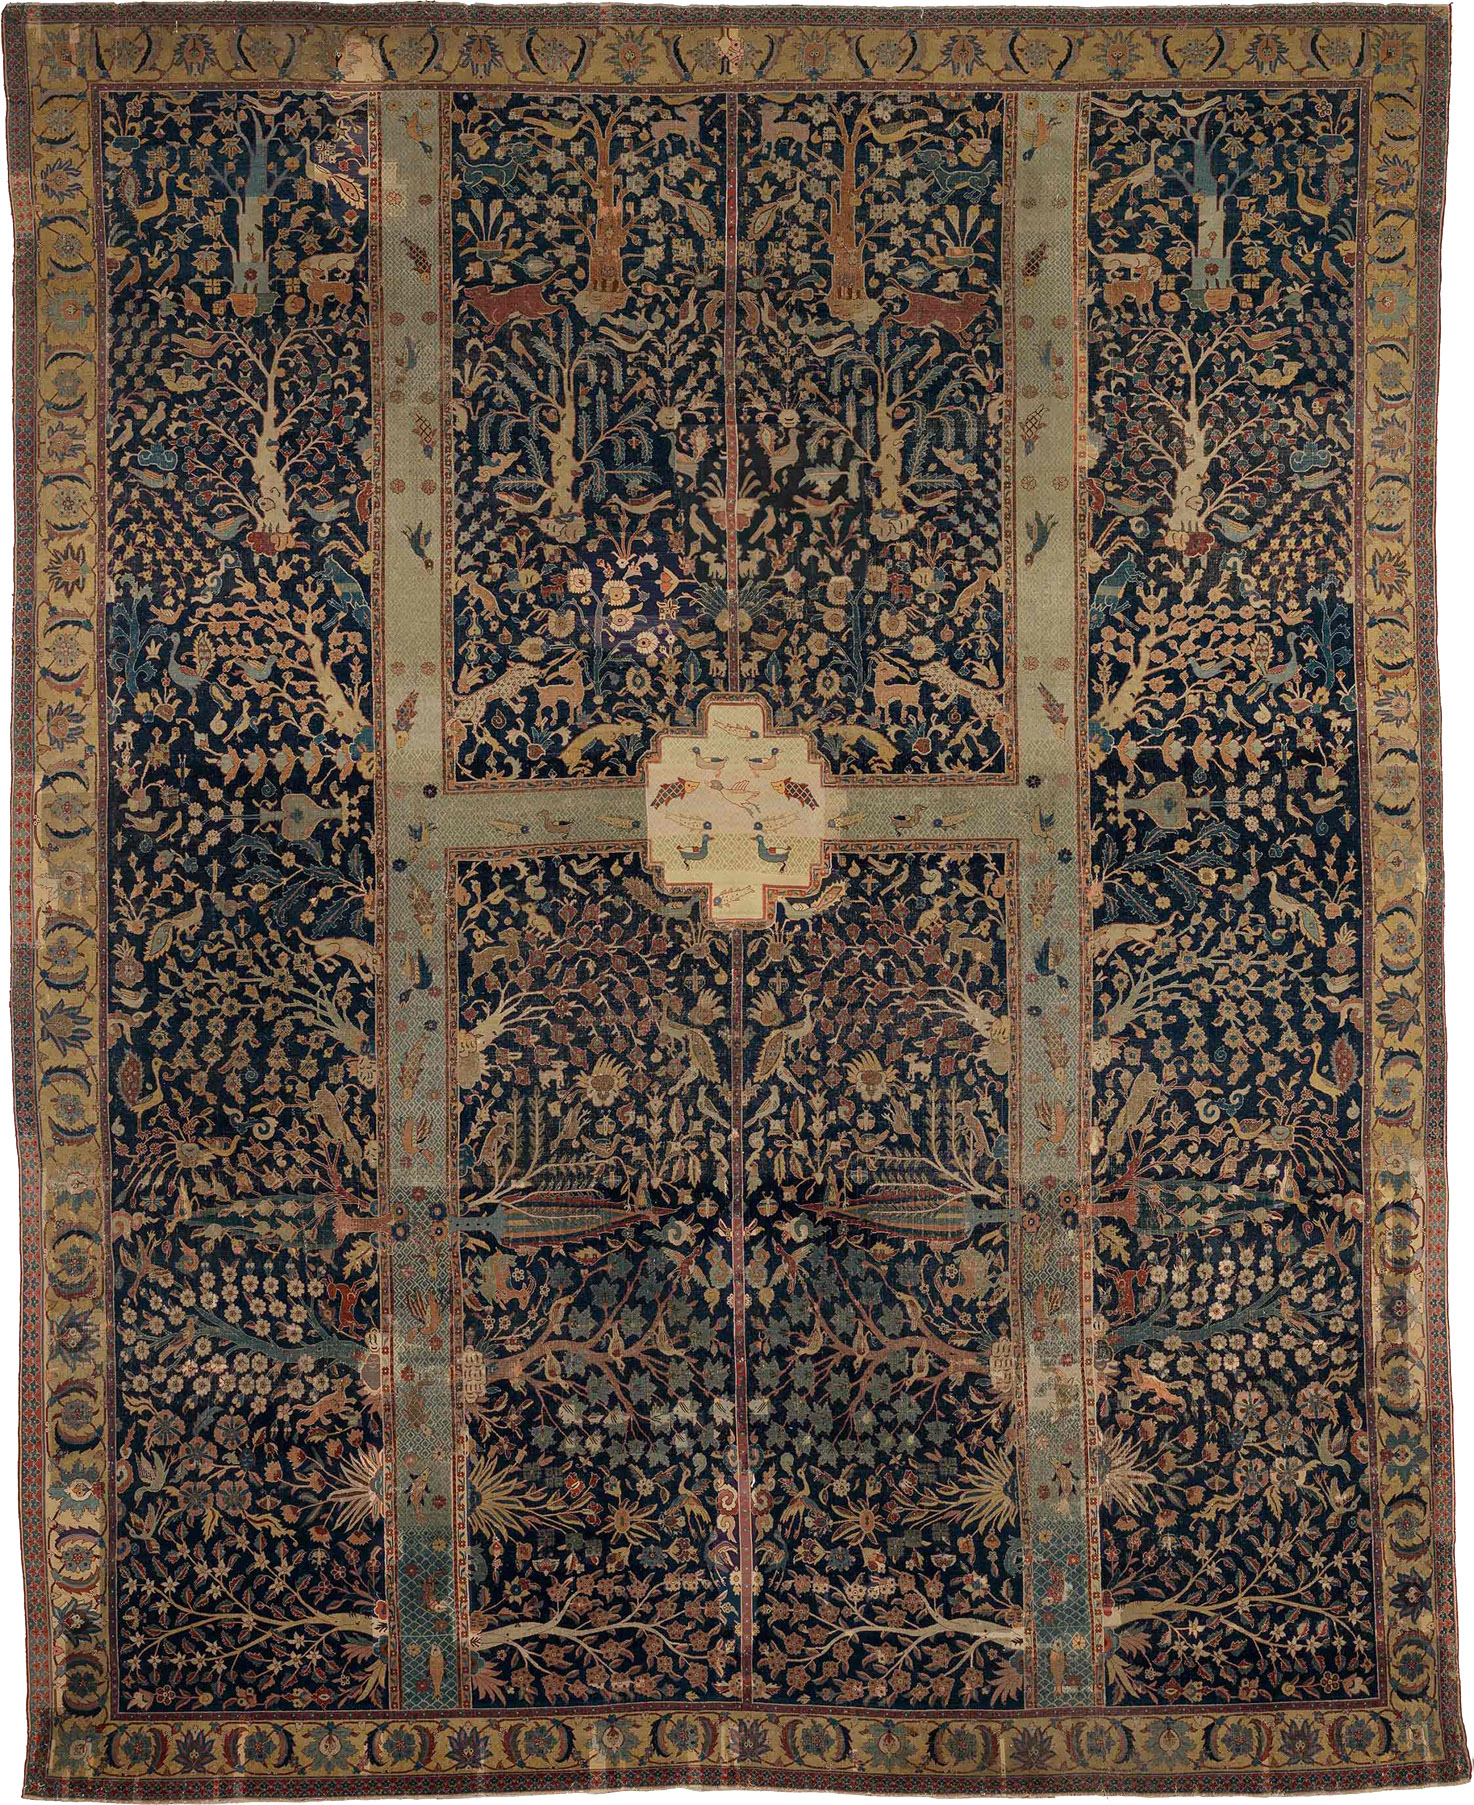 The Wagner Garden Carpet from the Burrell Collection